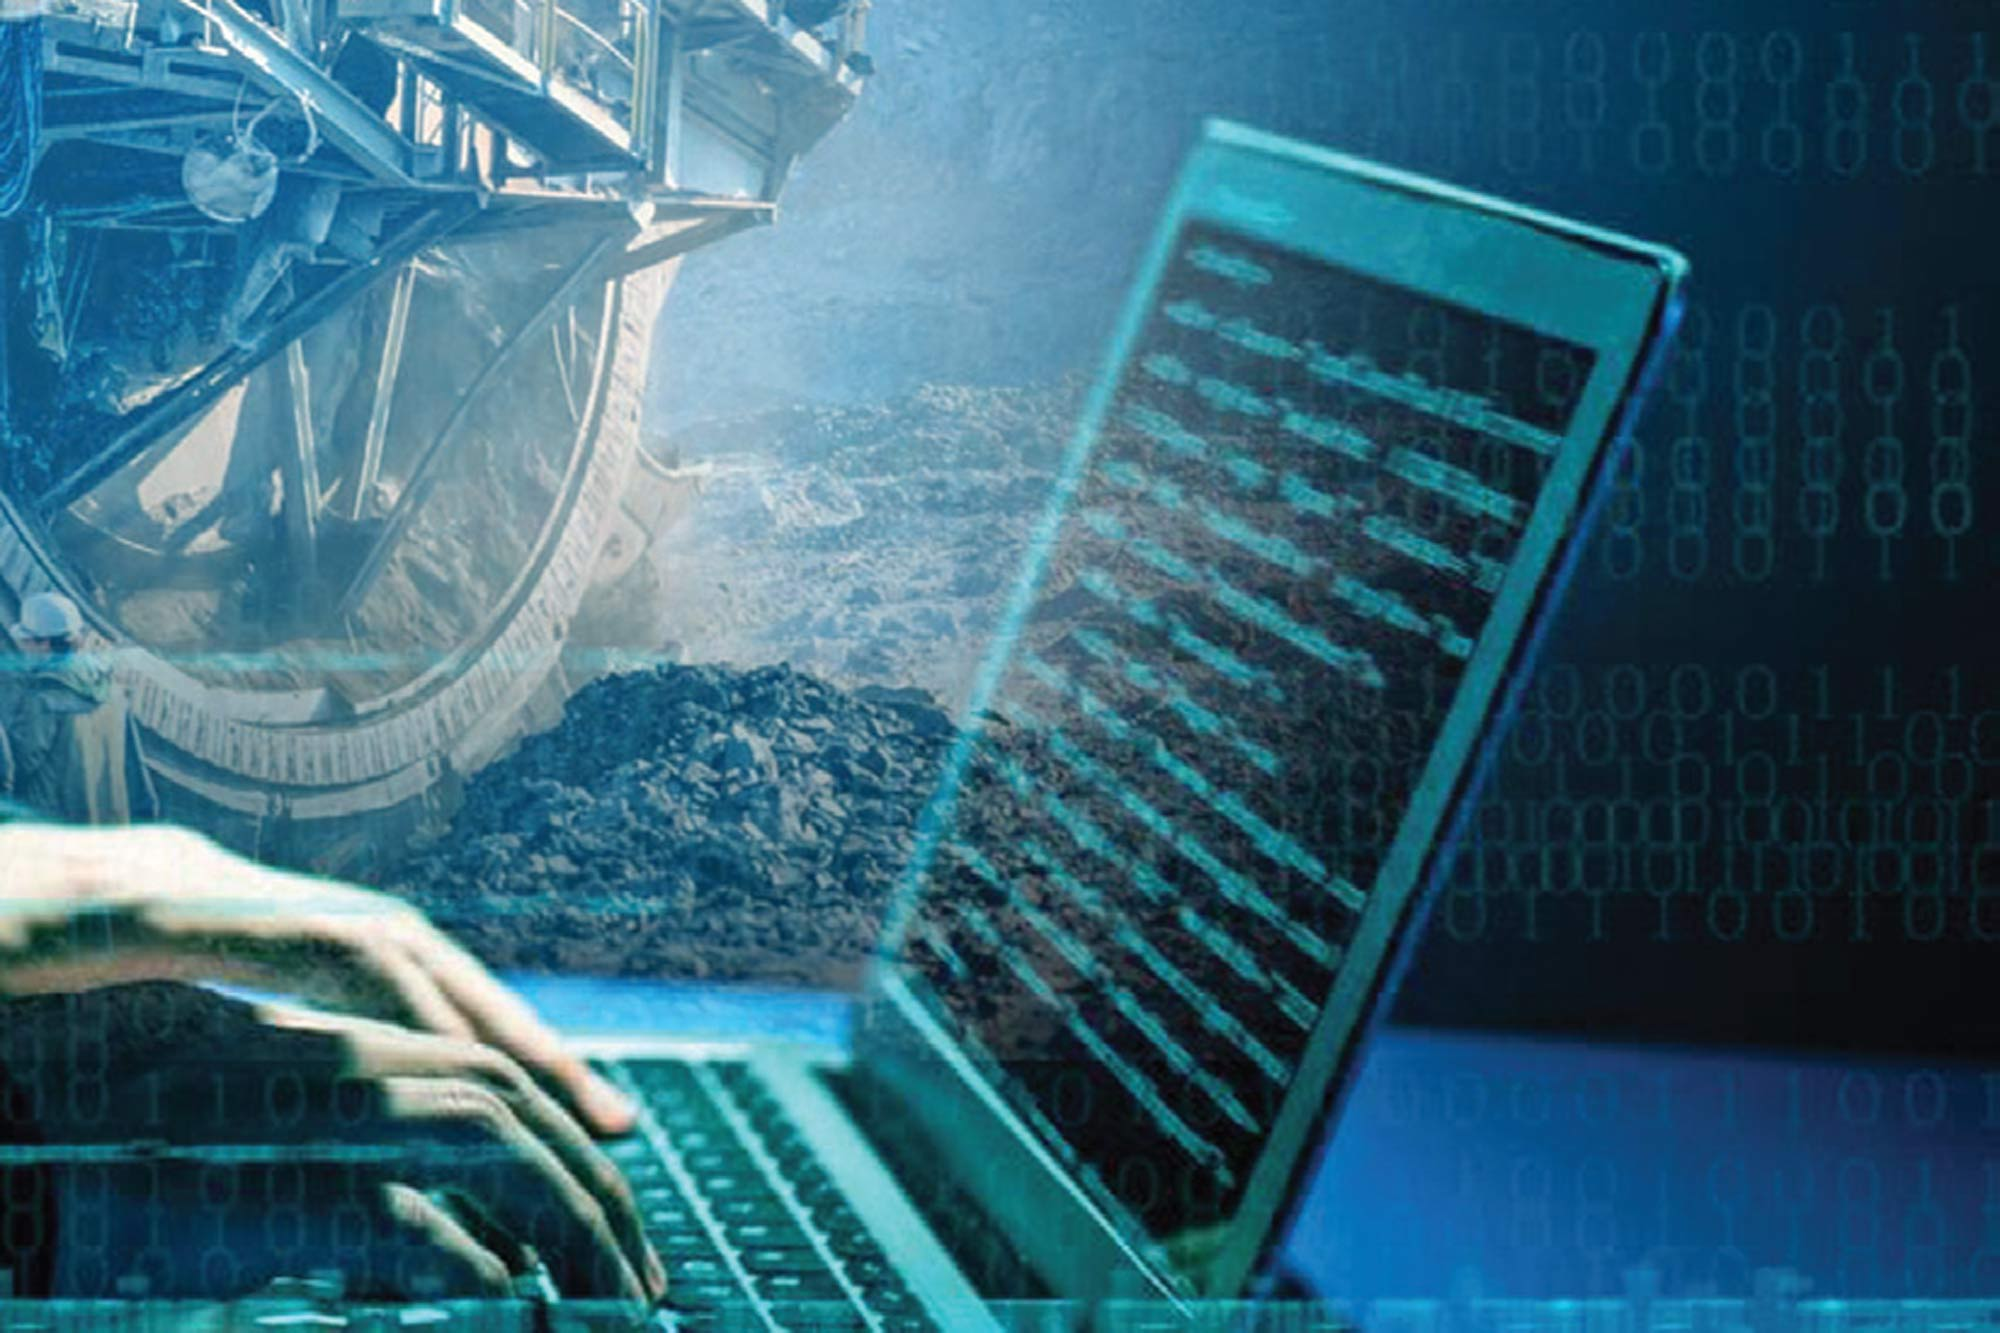 Cyber risk escalating as mining companies become increasingly digitised: Report